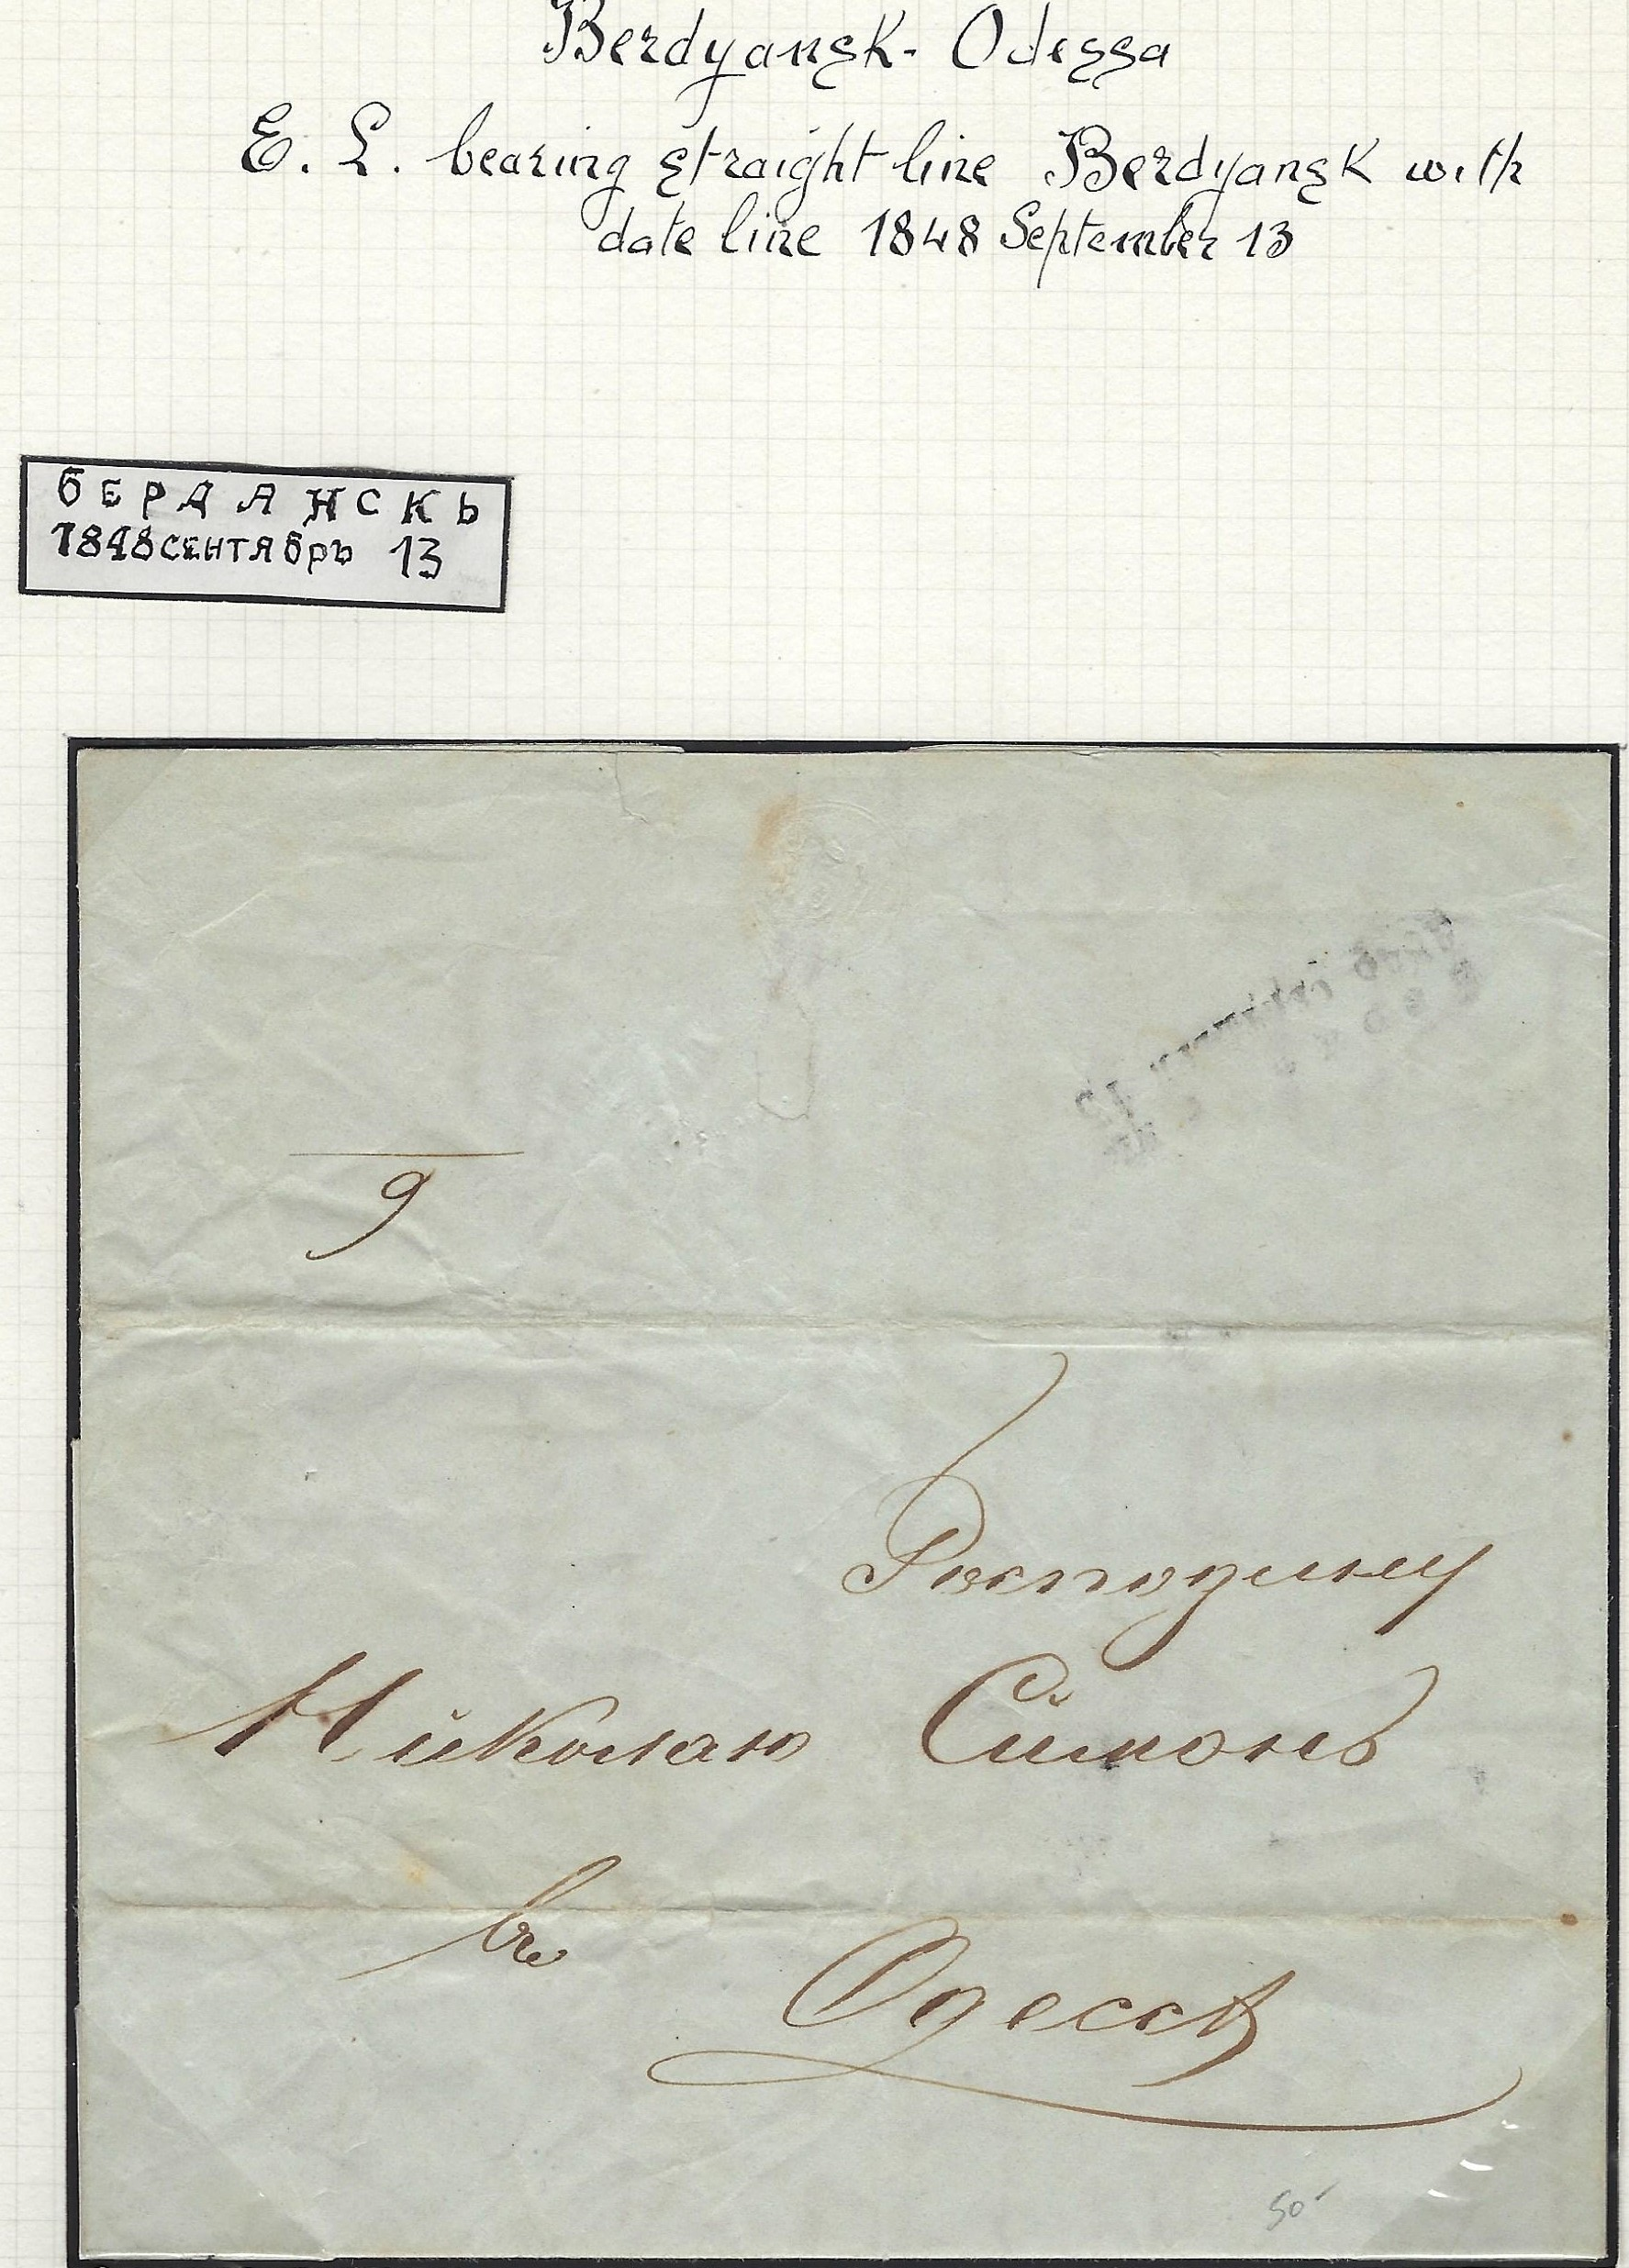 Russia Postal History - Stampless Covers Berdiansk Scott 1031848